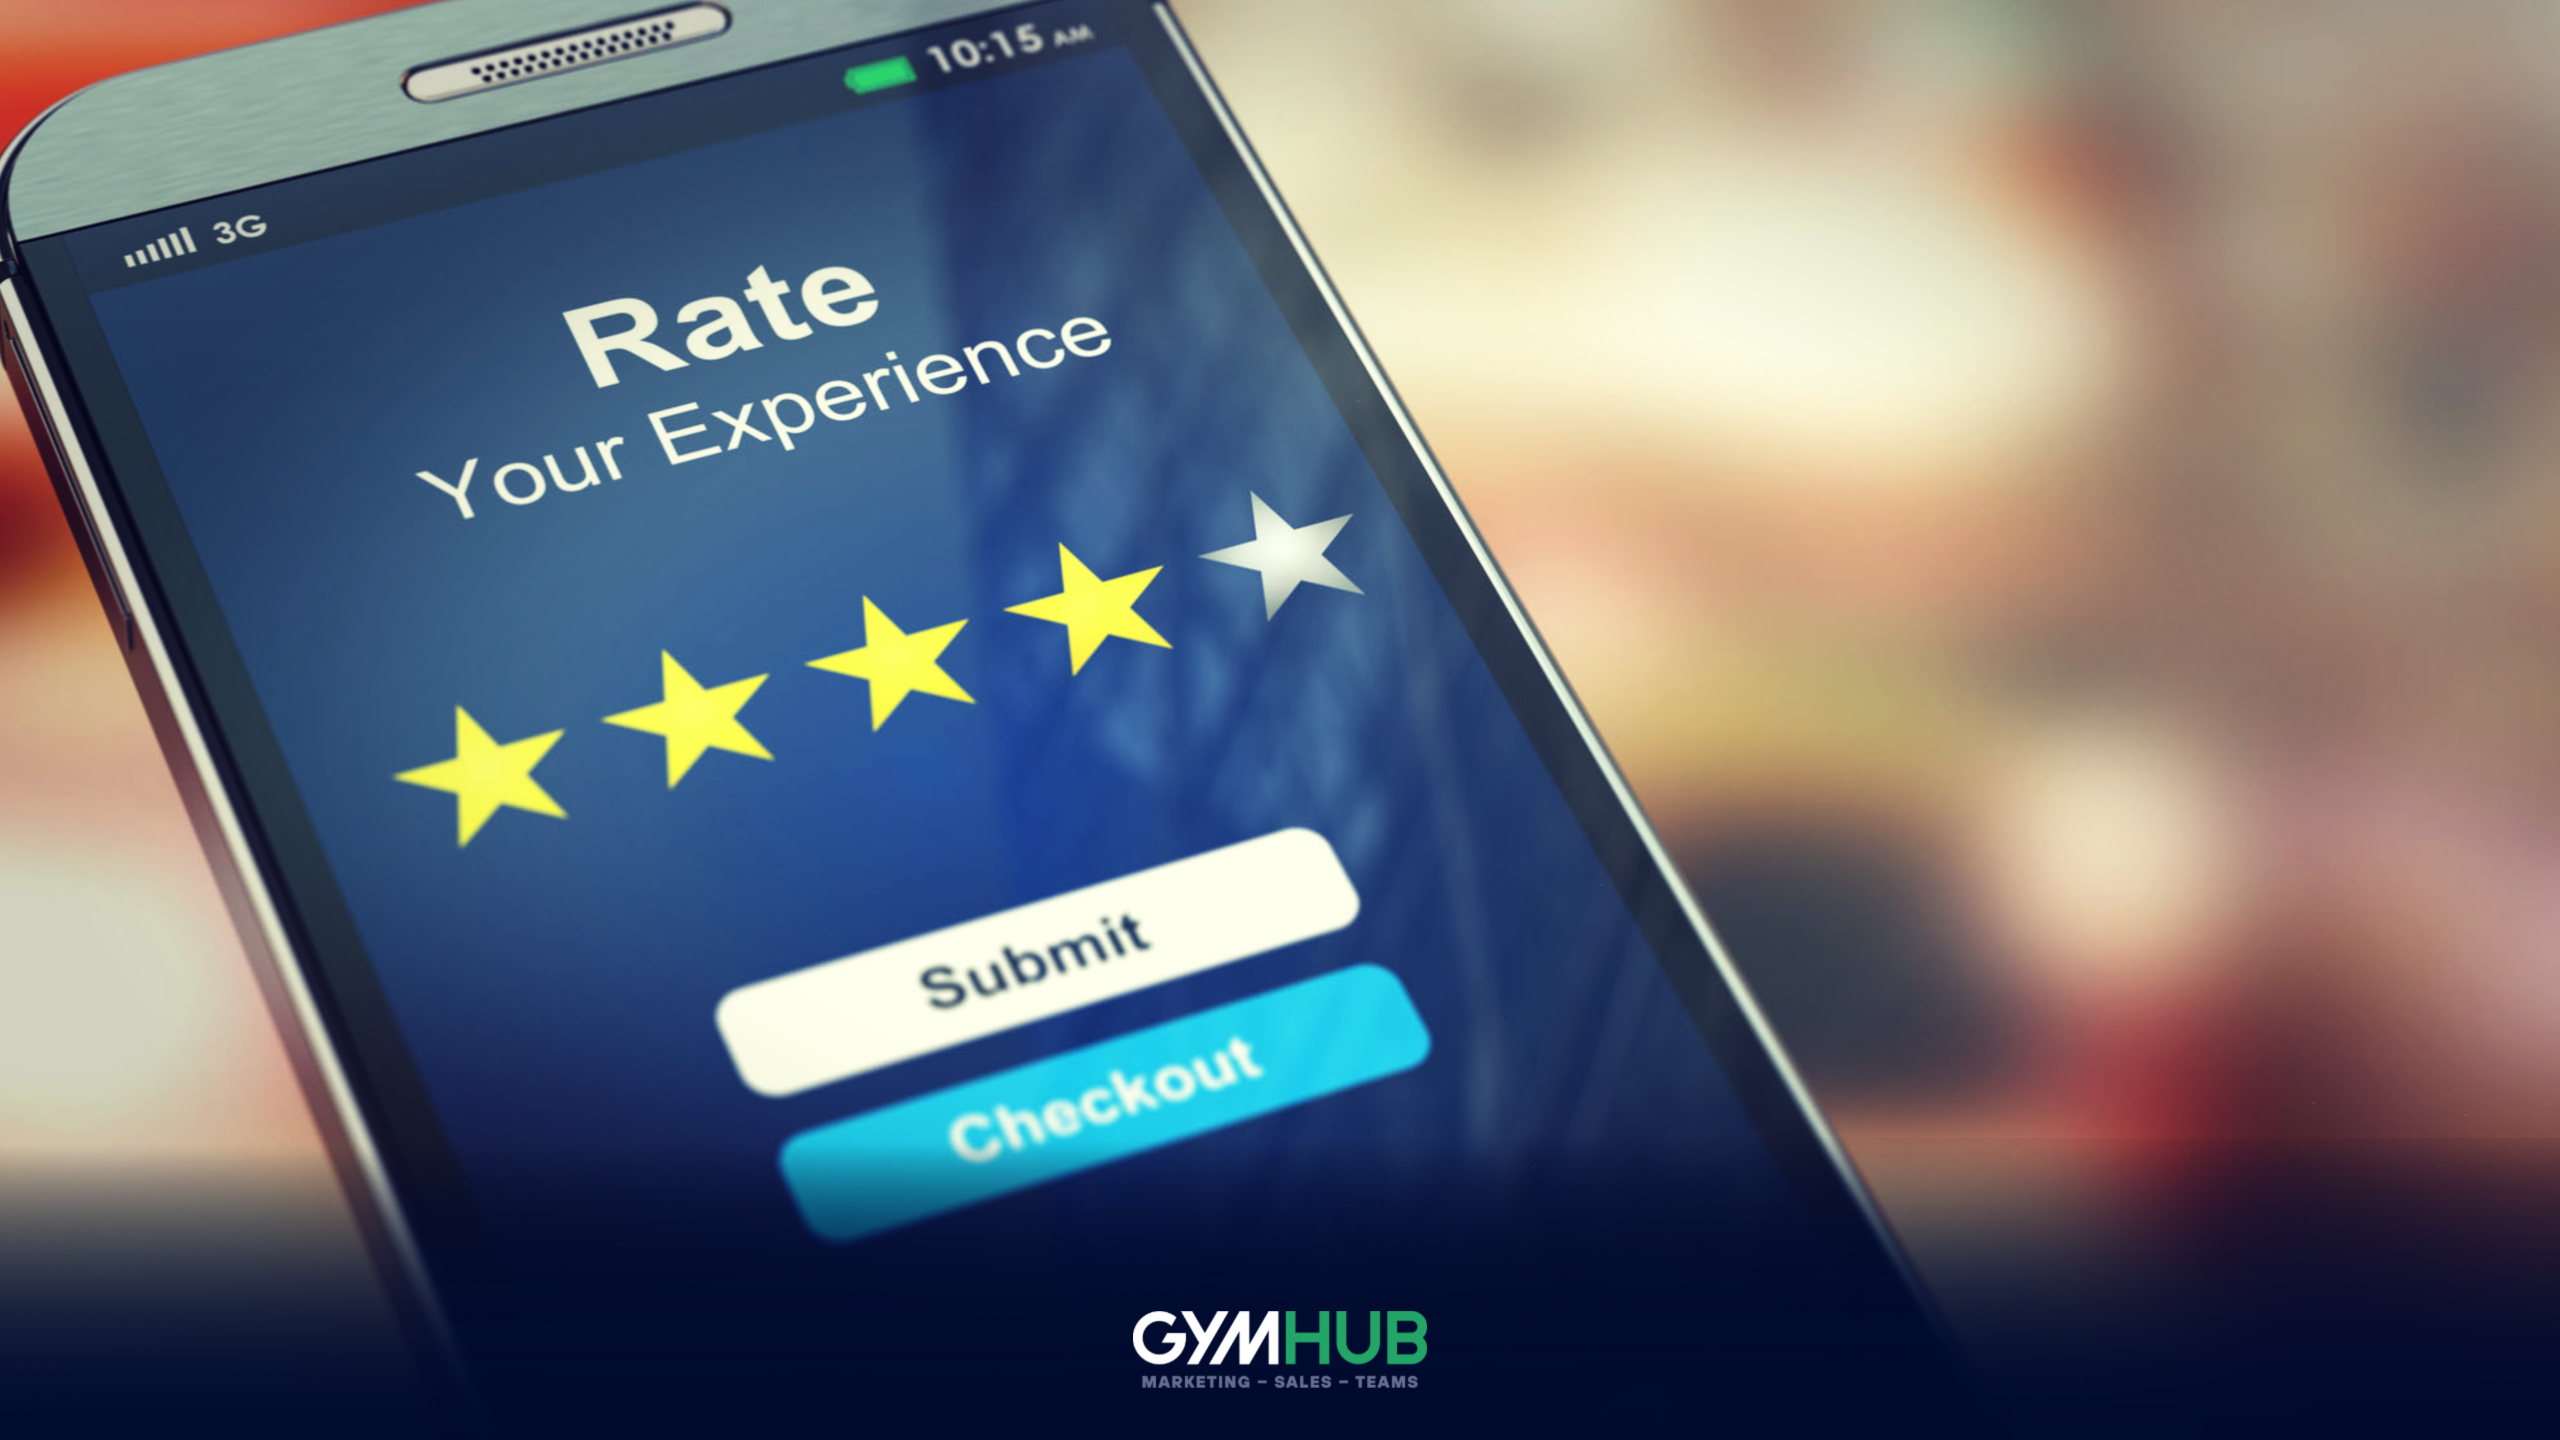 Online Reviews on Mobile